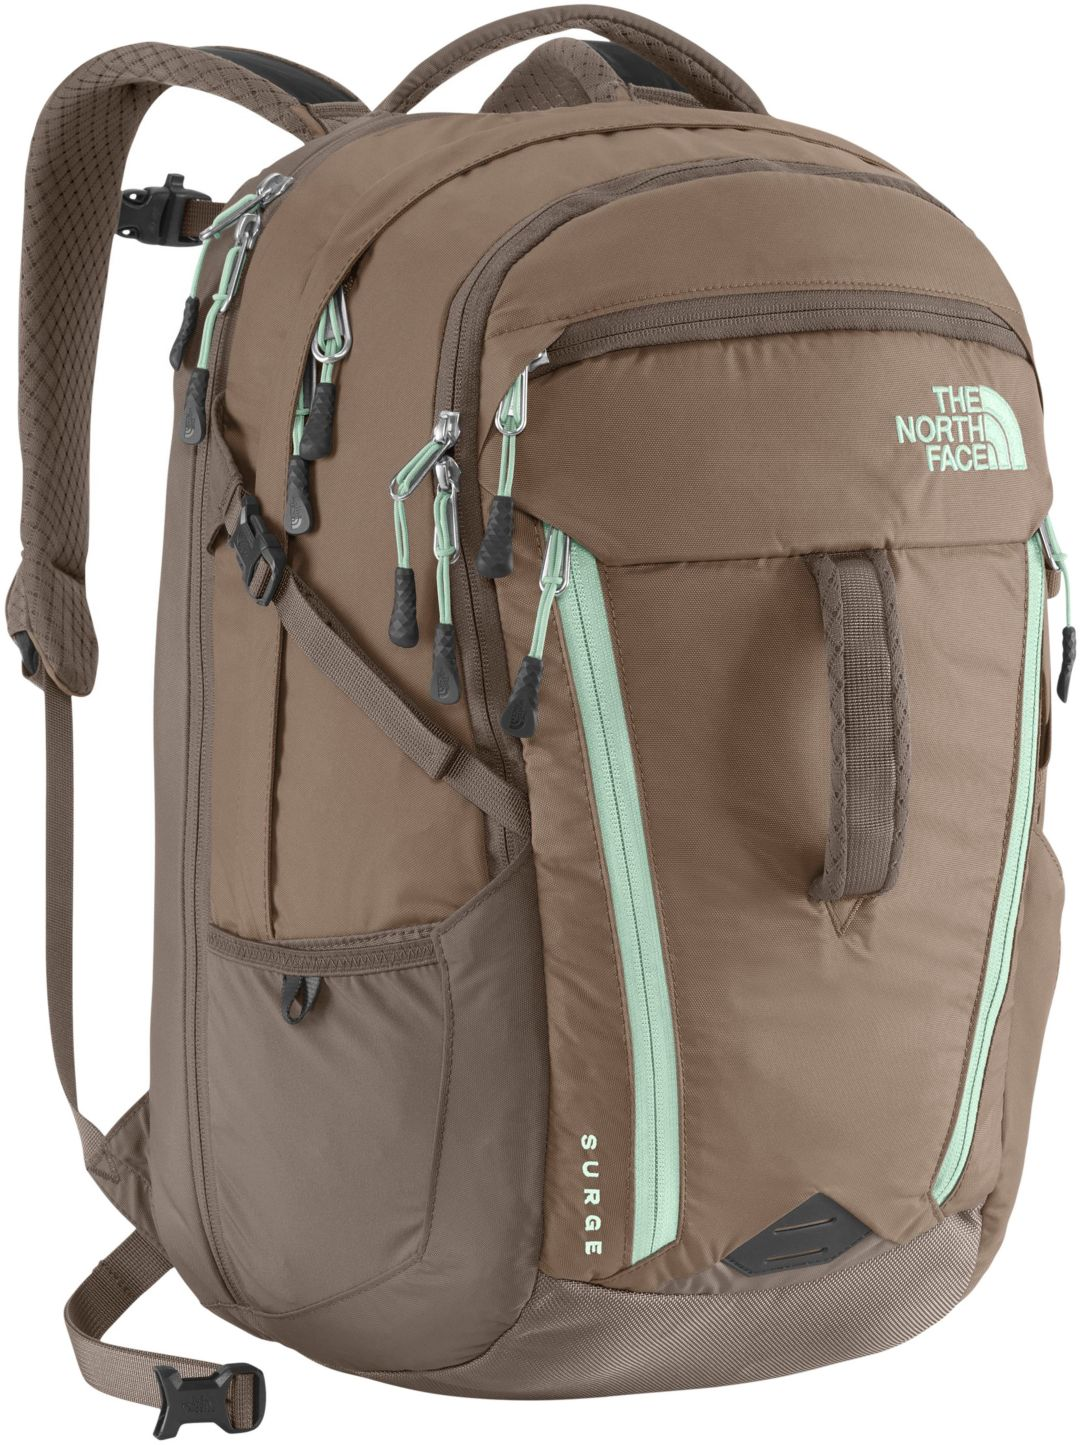 37bfc2f2eeb The North Face Women's Surge Backpack | DICK'S Sporting Goods